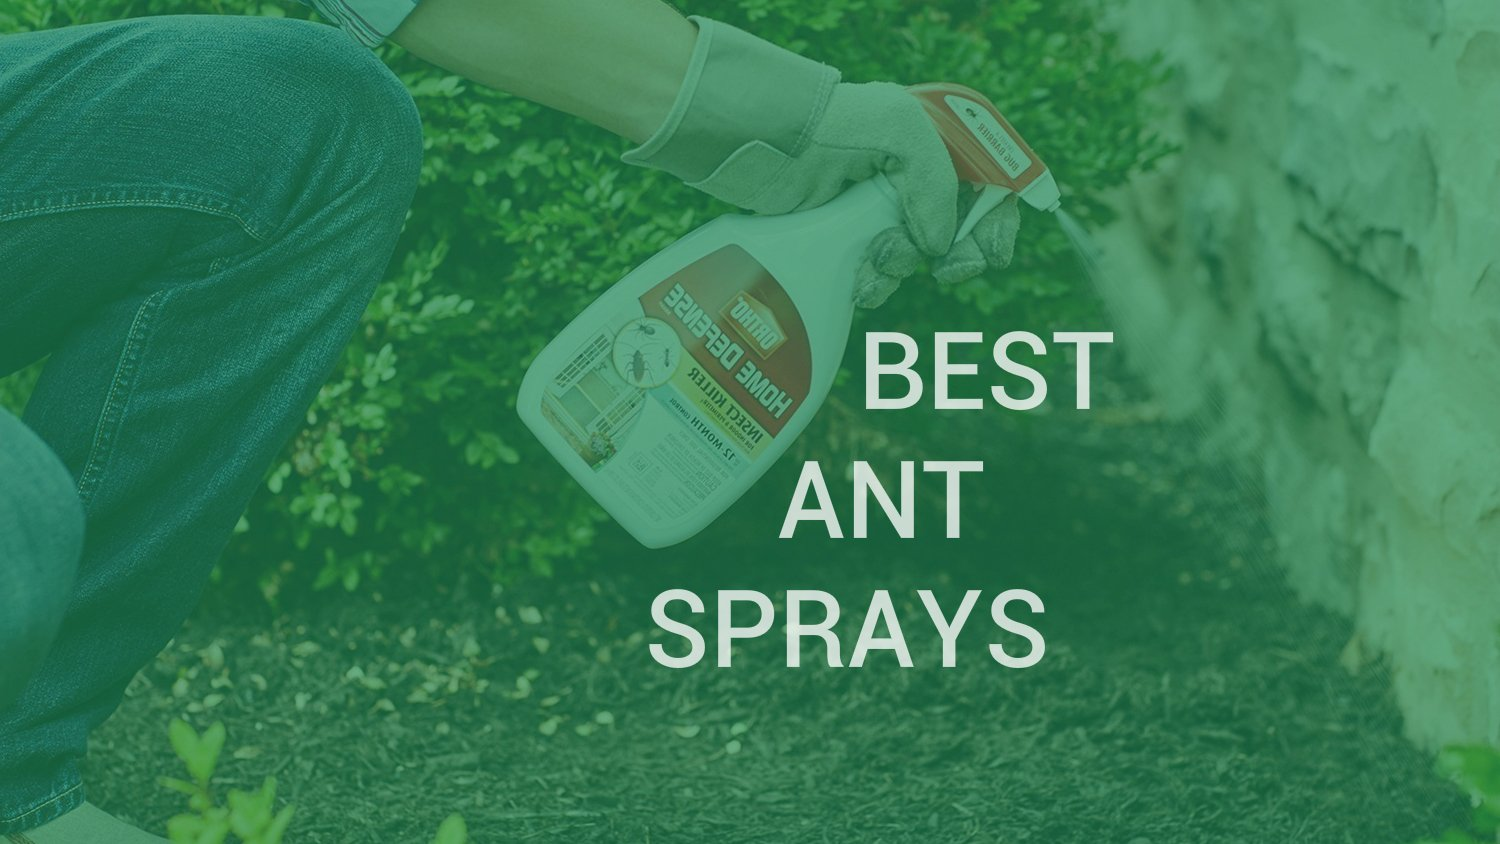 best ant sprays